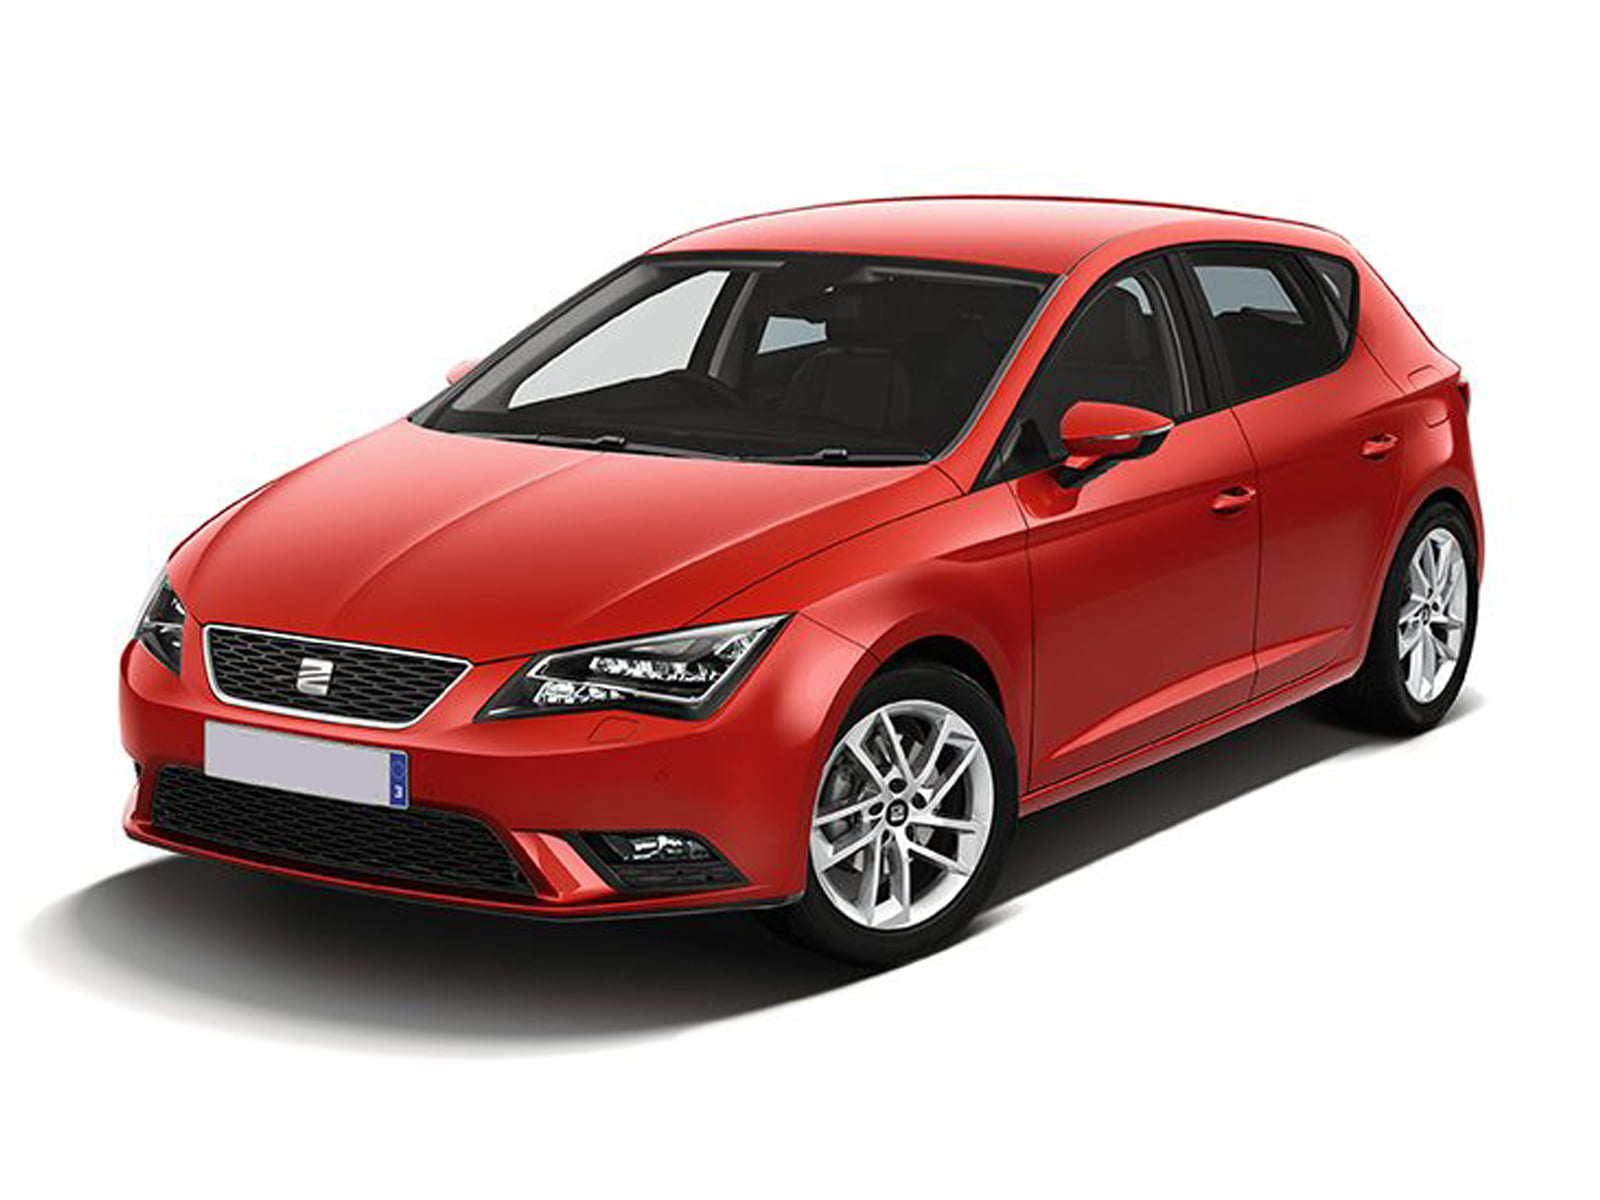 Seat Leon 1.0 TSI 85kW/115pk Style Ultimate Edition 5d.